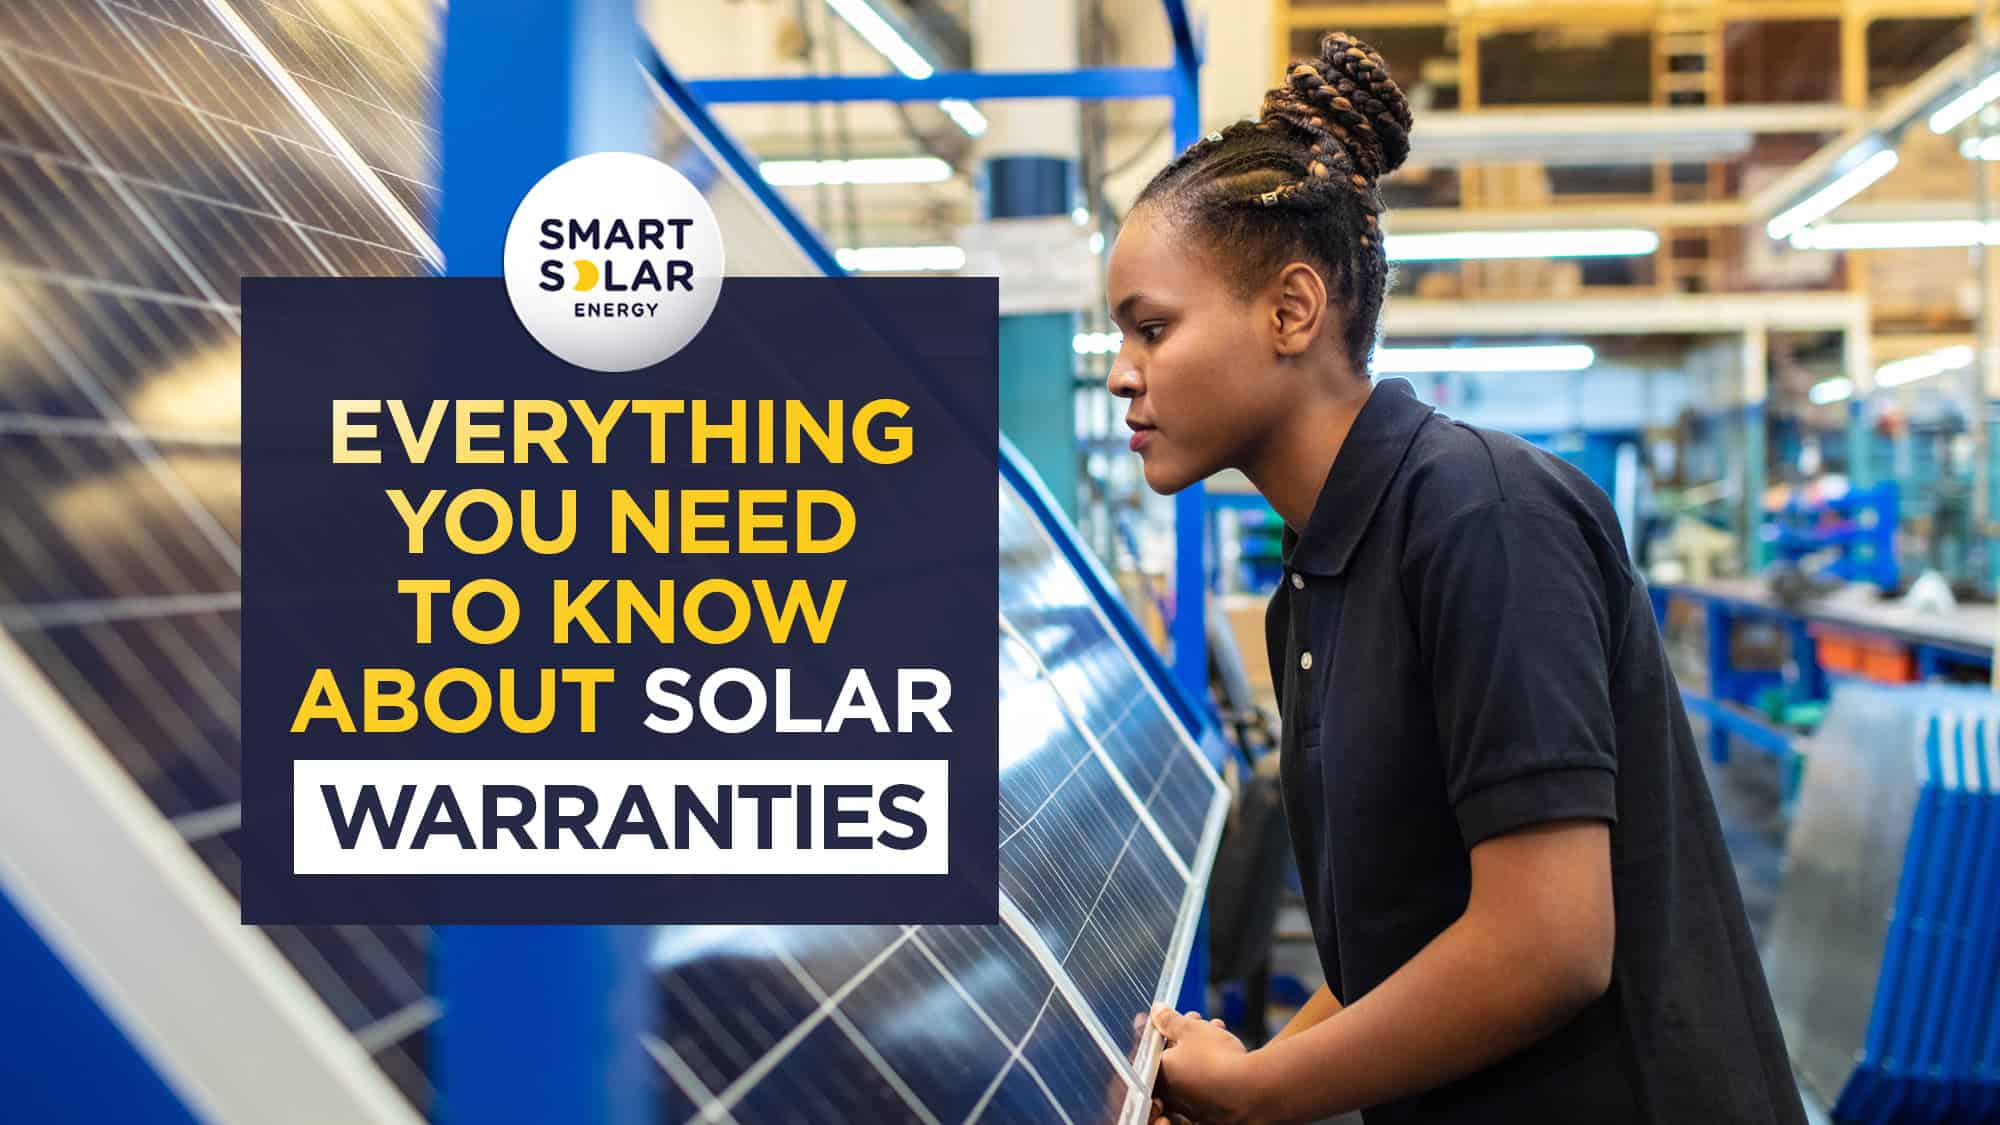 Everything you need to know about solar warranties